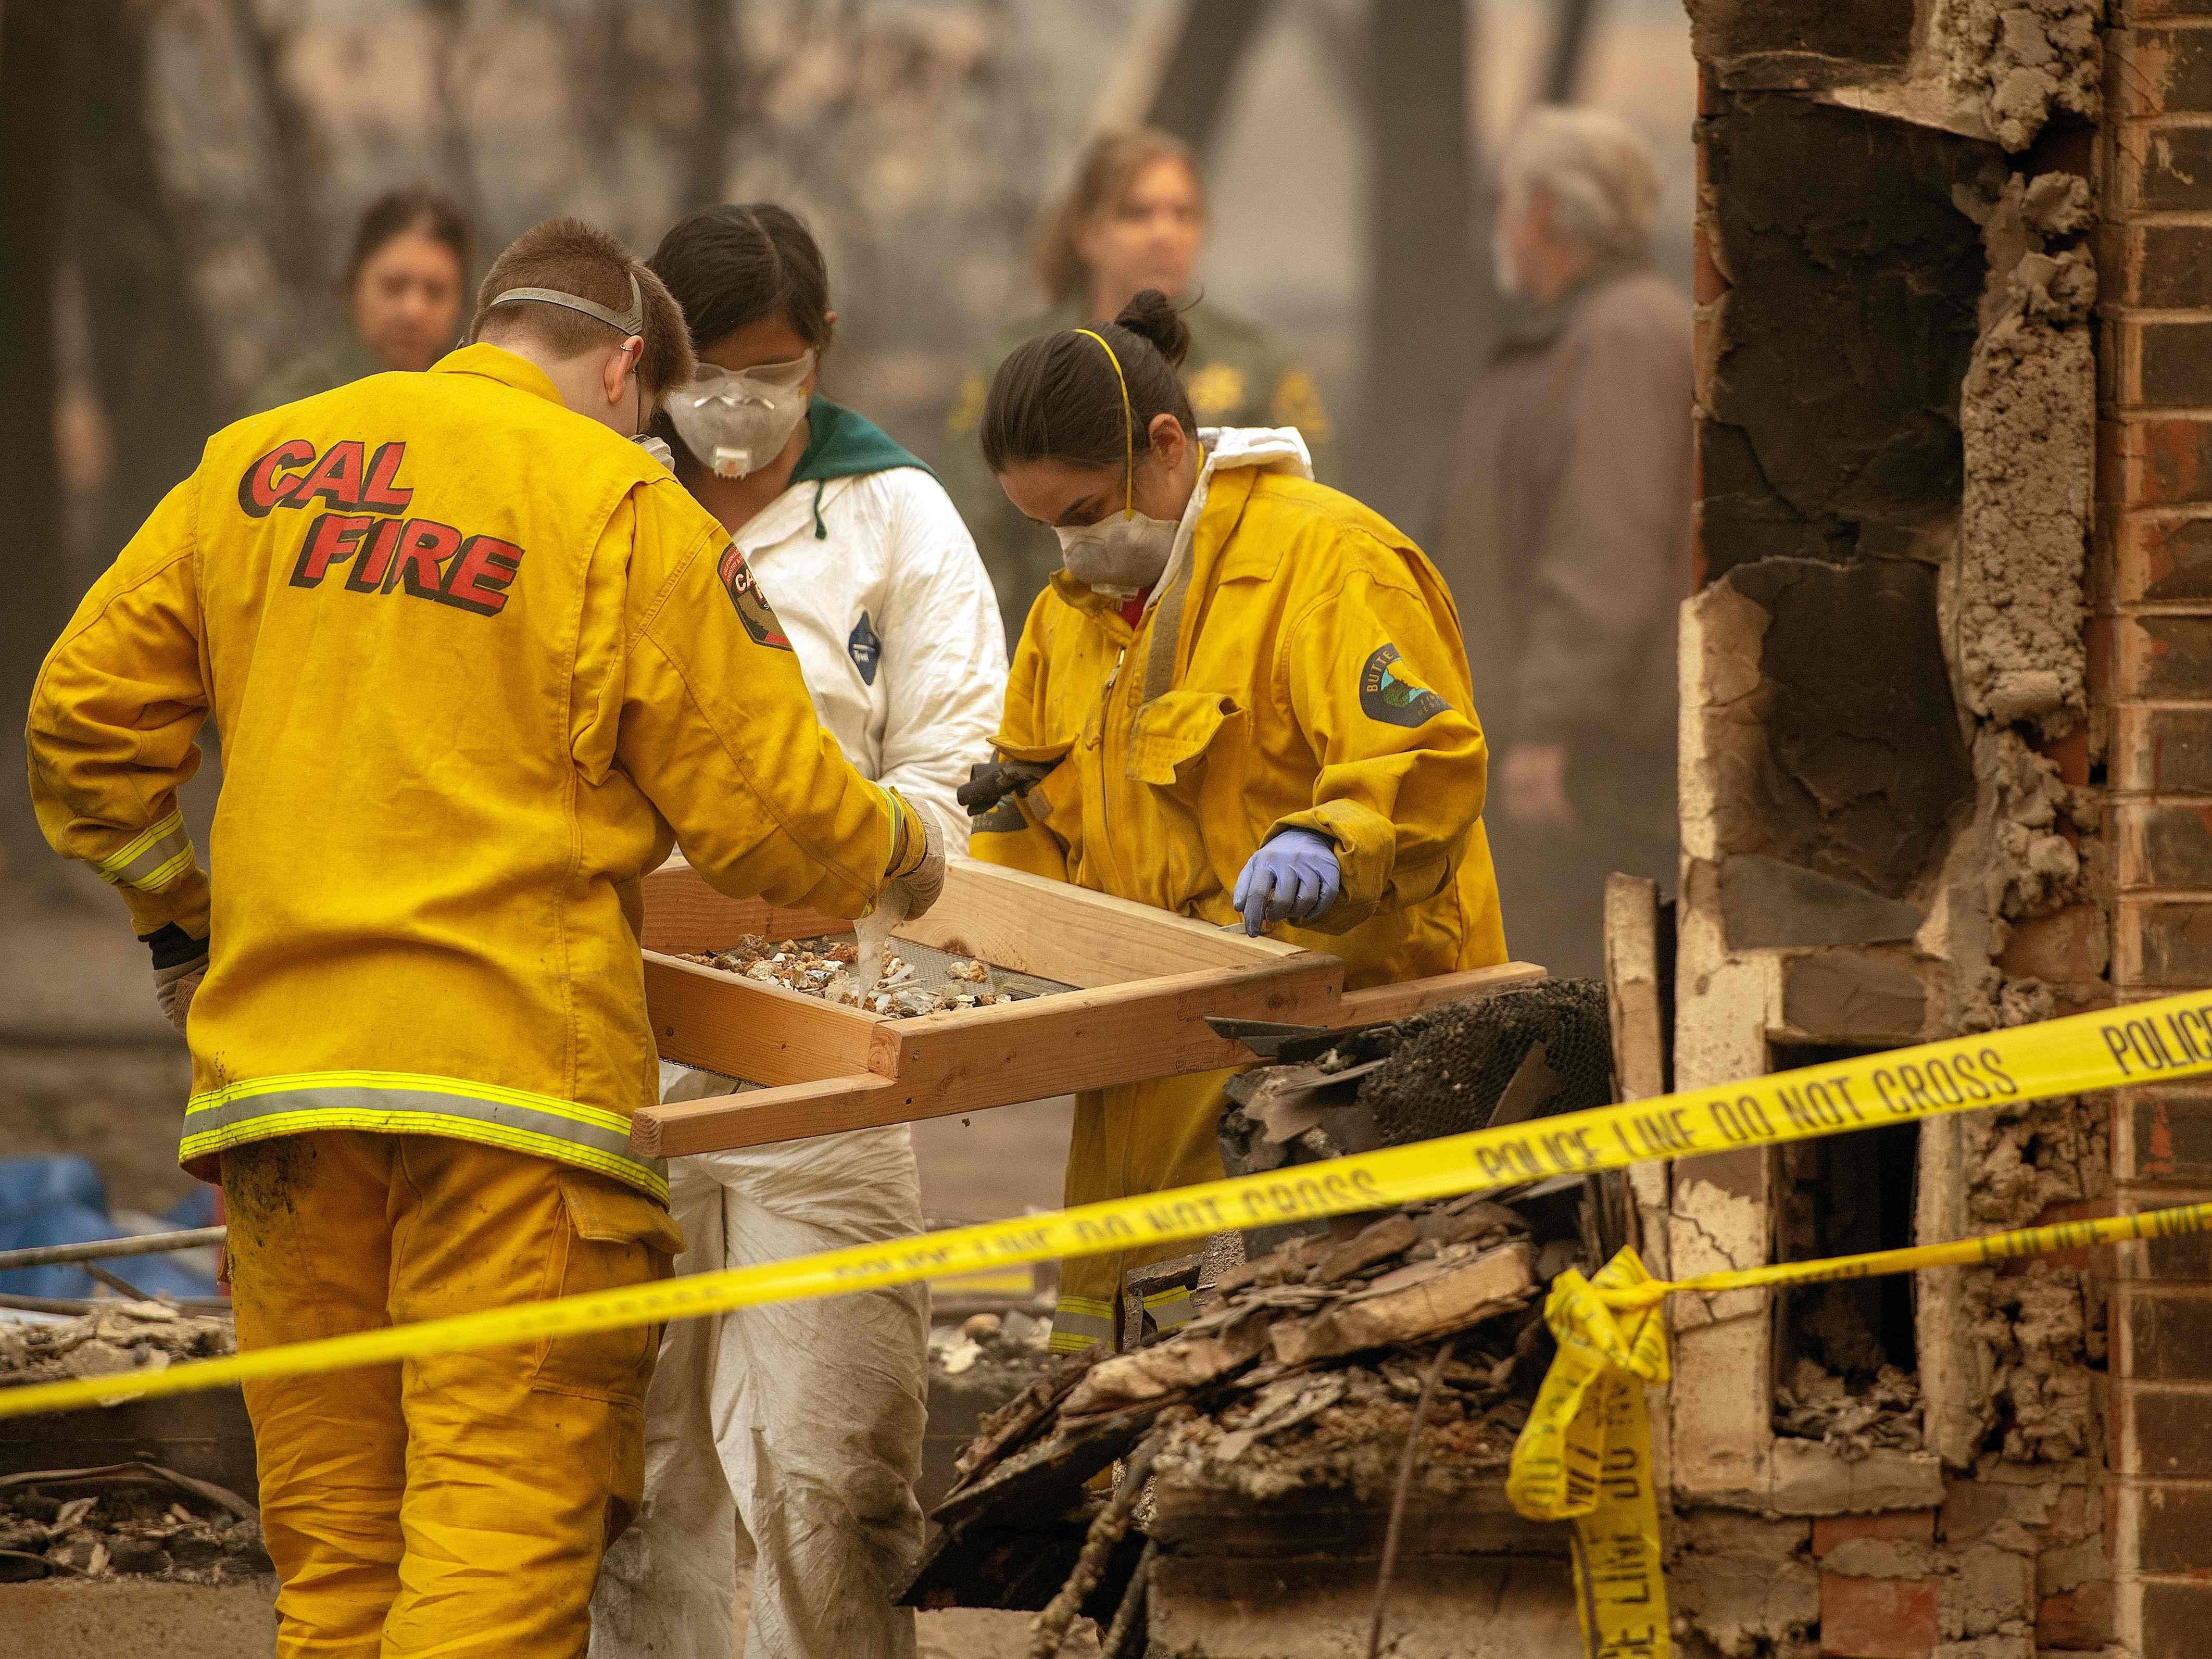 Rescue workers sift through rubble in search of human remains at a burned property in Paradise, Calif. on Nov. 14, 2018.